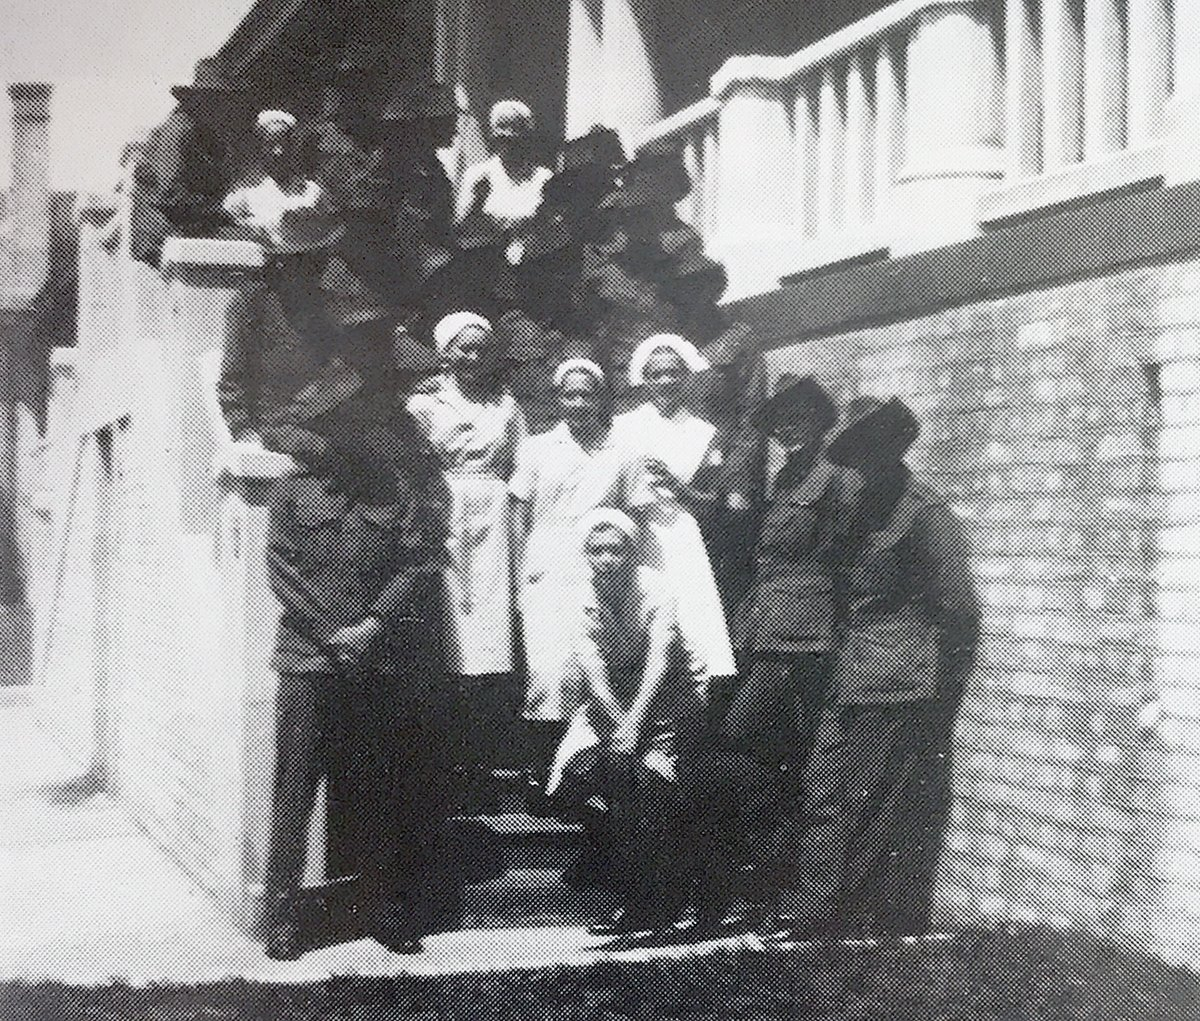 Nurses with troops circa 1940